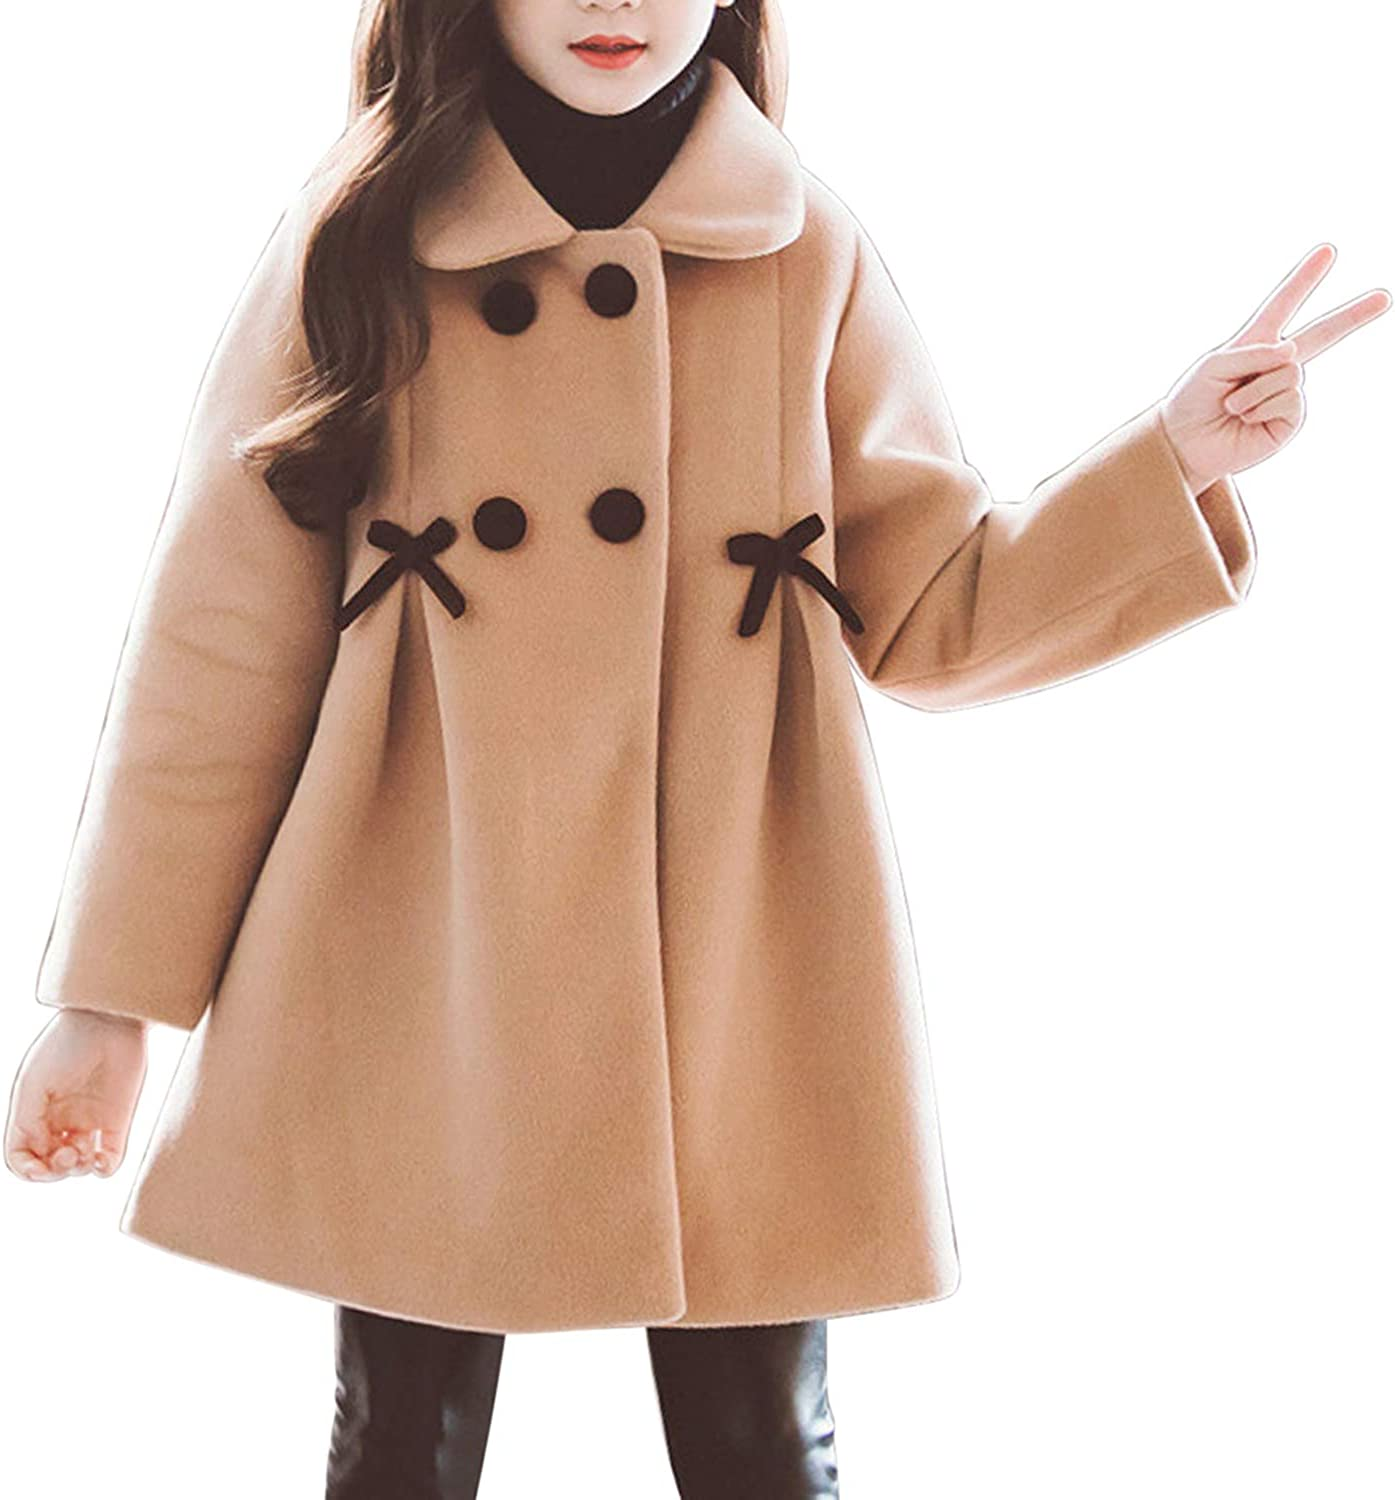 Everbeauty Girls Double Breasted Pea Coat Fashion Toddler Girl Winter Dress Coat and Beret Hat ENTDY001